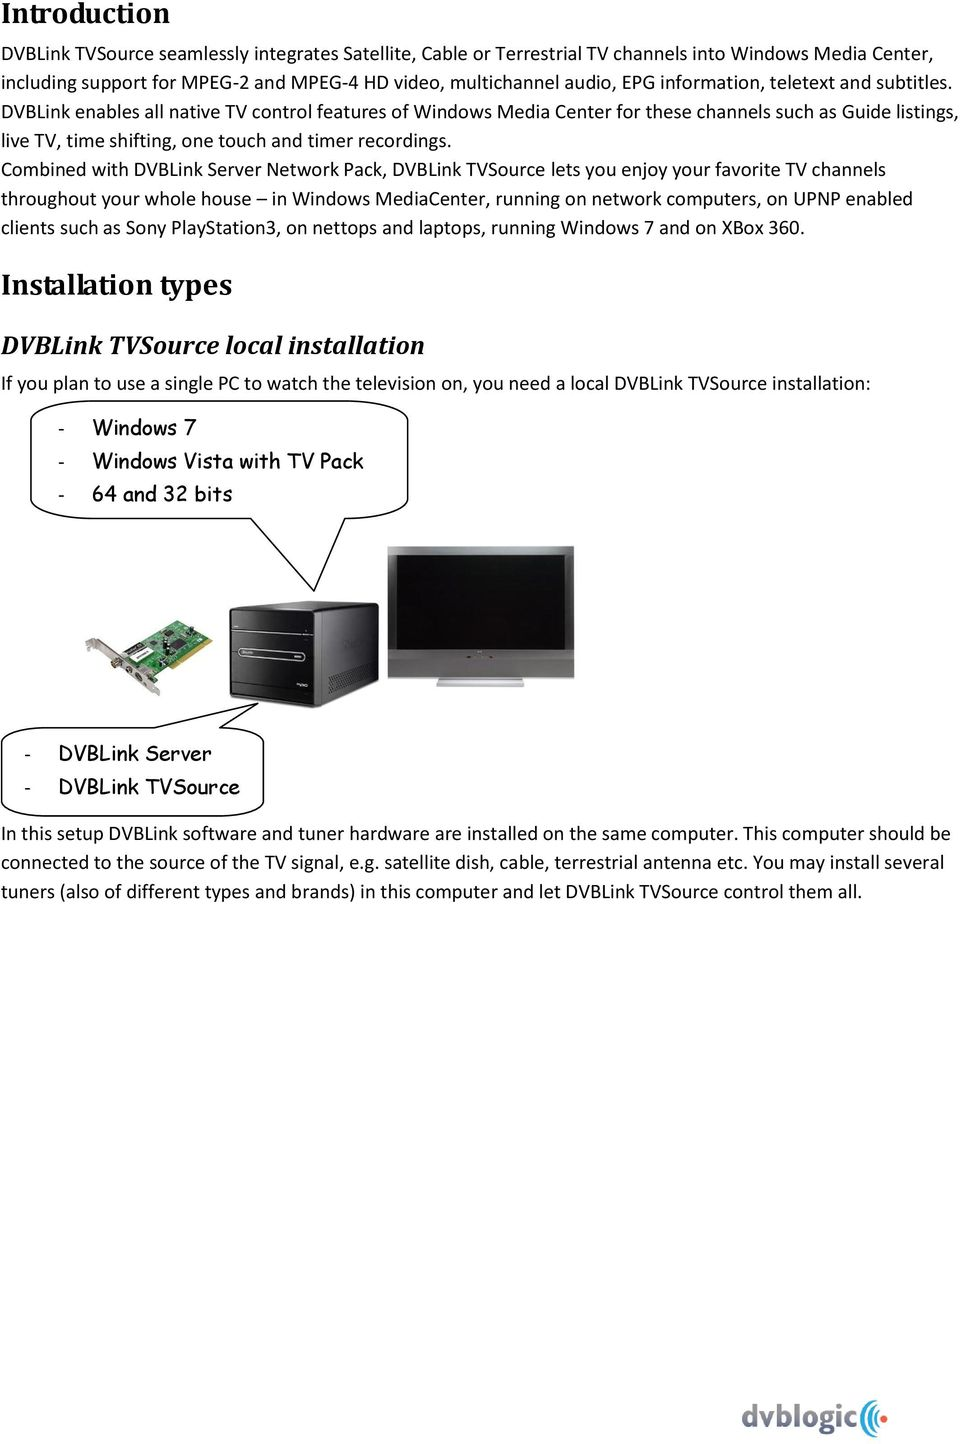 Dvblink Tvsource Installation And Configuration Manual Pdf Wiring A Whole House Computer Network Enables All Native Tv Control Features Of Windows Media Center For These Channels Such As